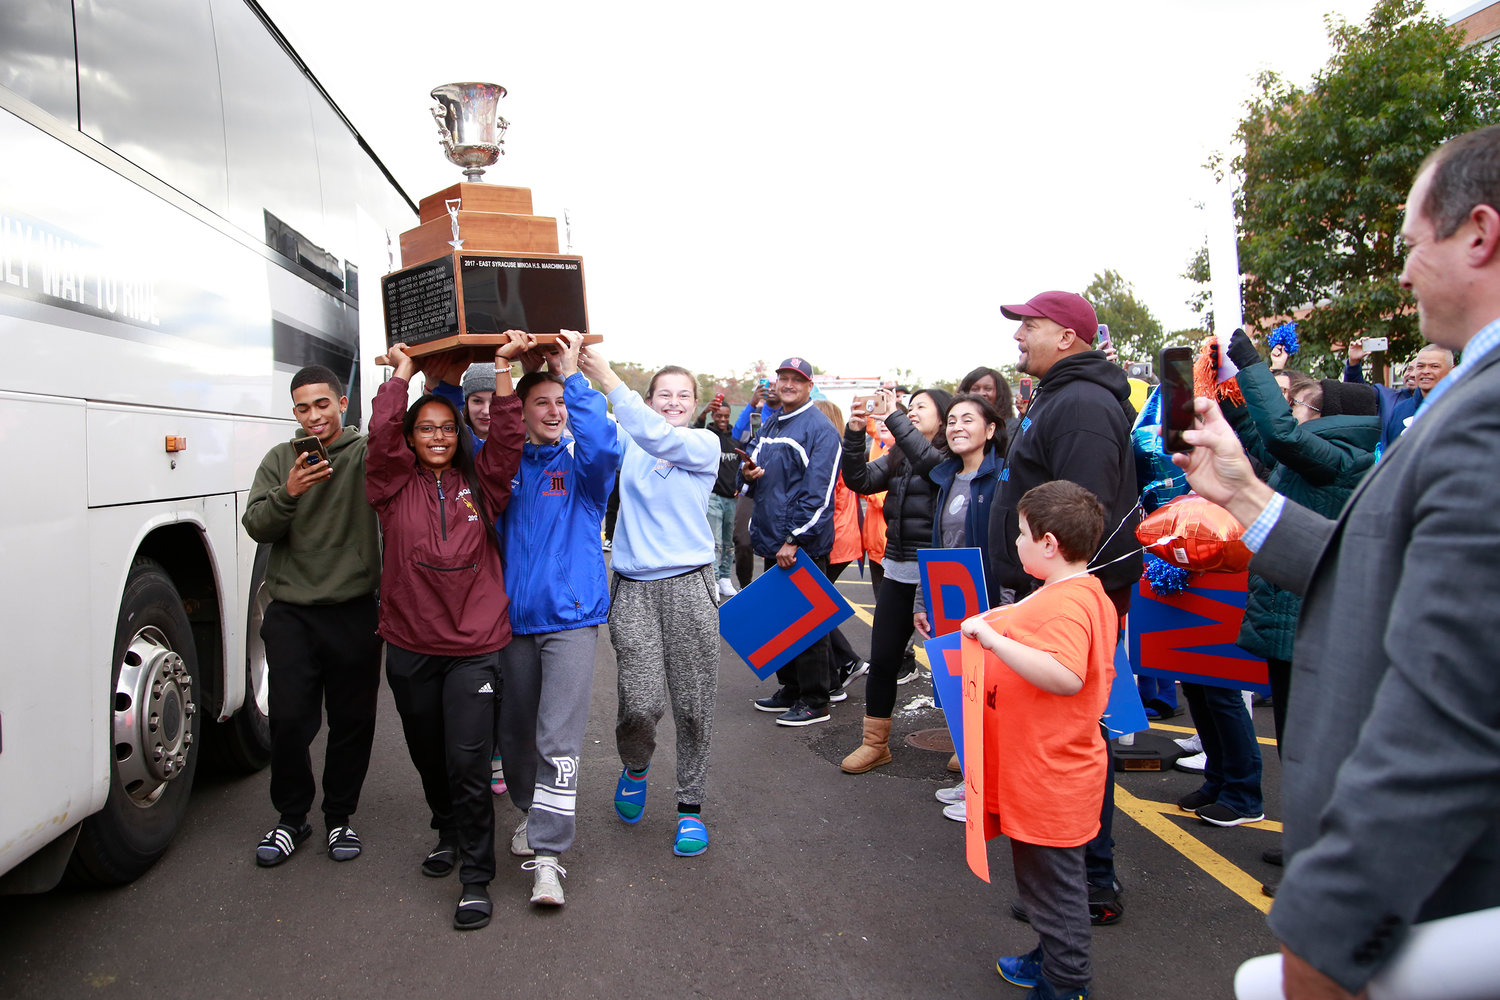 The Pride of Malverne Marching Band hoisted their trophy as parents, students and faculty members congratulated them at Malverne High School on Oct. 29.